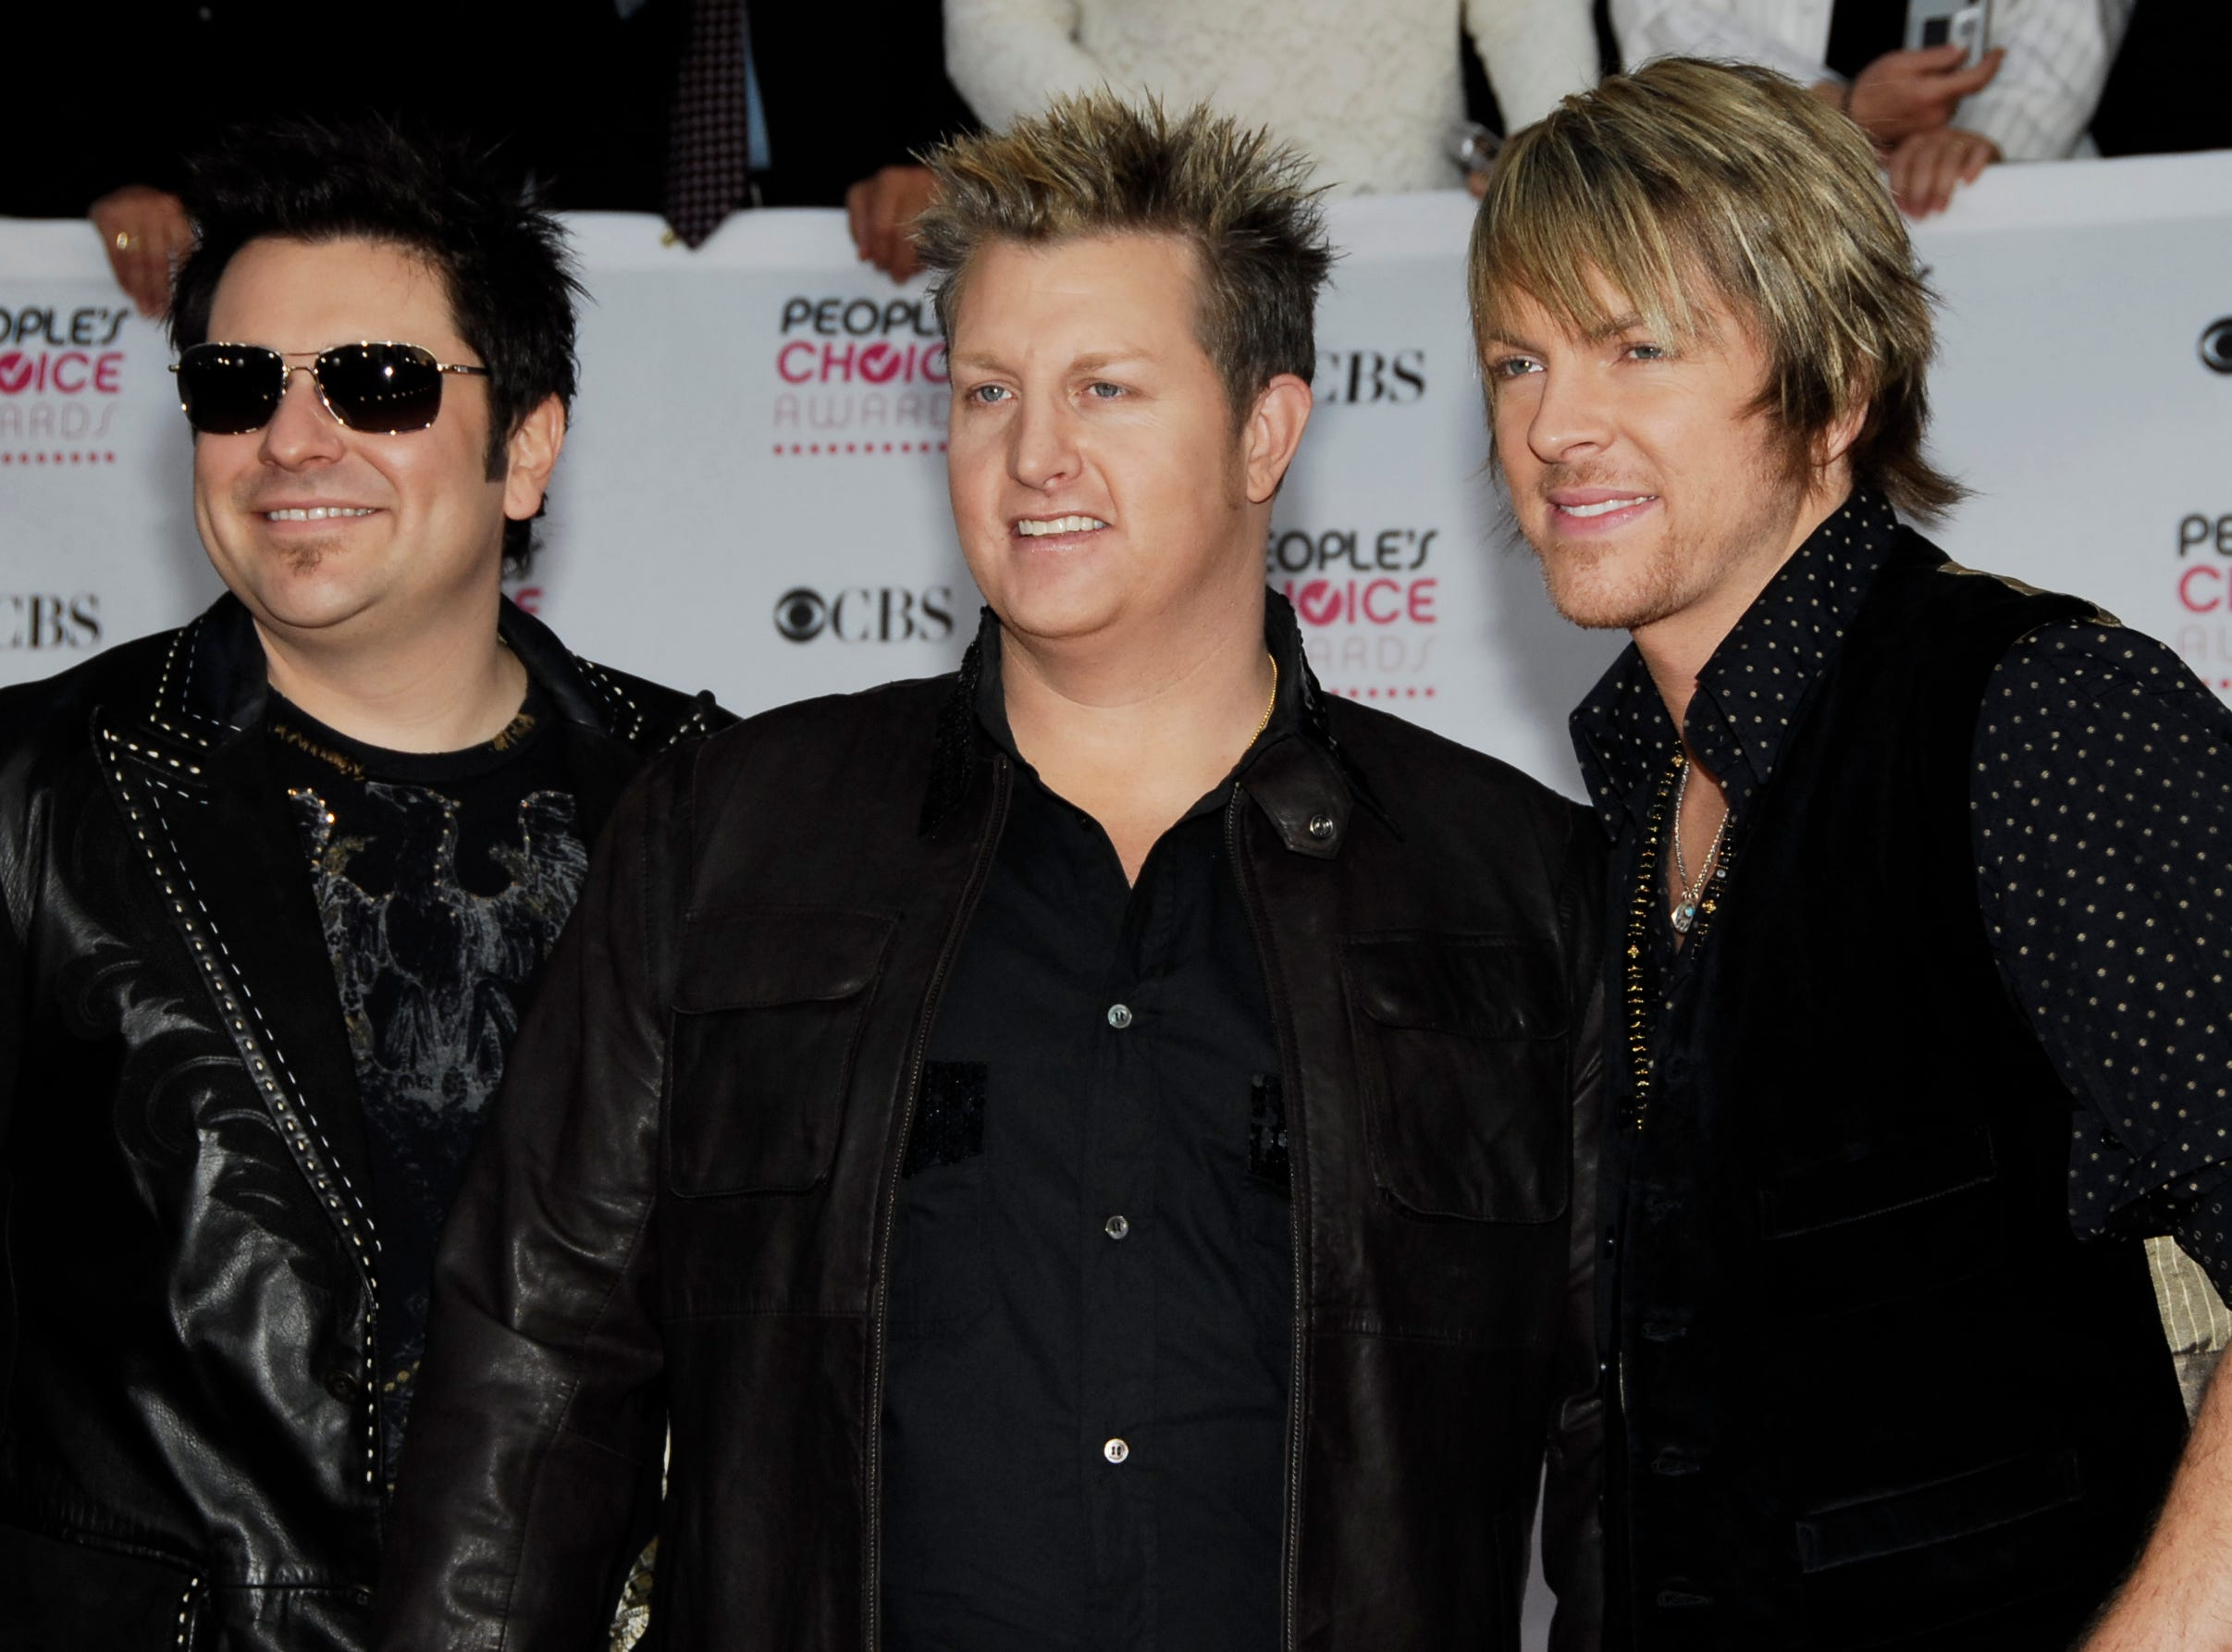 Rascal Flatts, from left: Jay DeMarcus, Gary LeVox and Joe Don Rooney arrive at the 33rd Annual People's Choice Awards on Tuesday, Jan. 9, 2007, in Los Angeles.  (AP Photo/Dan Steinberg) ORG XMIT: CAKJ101